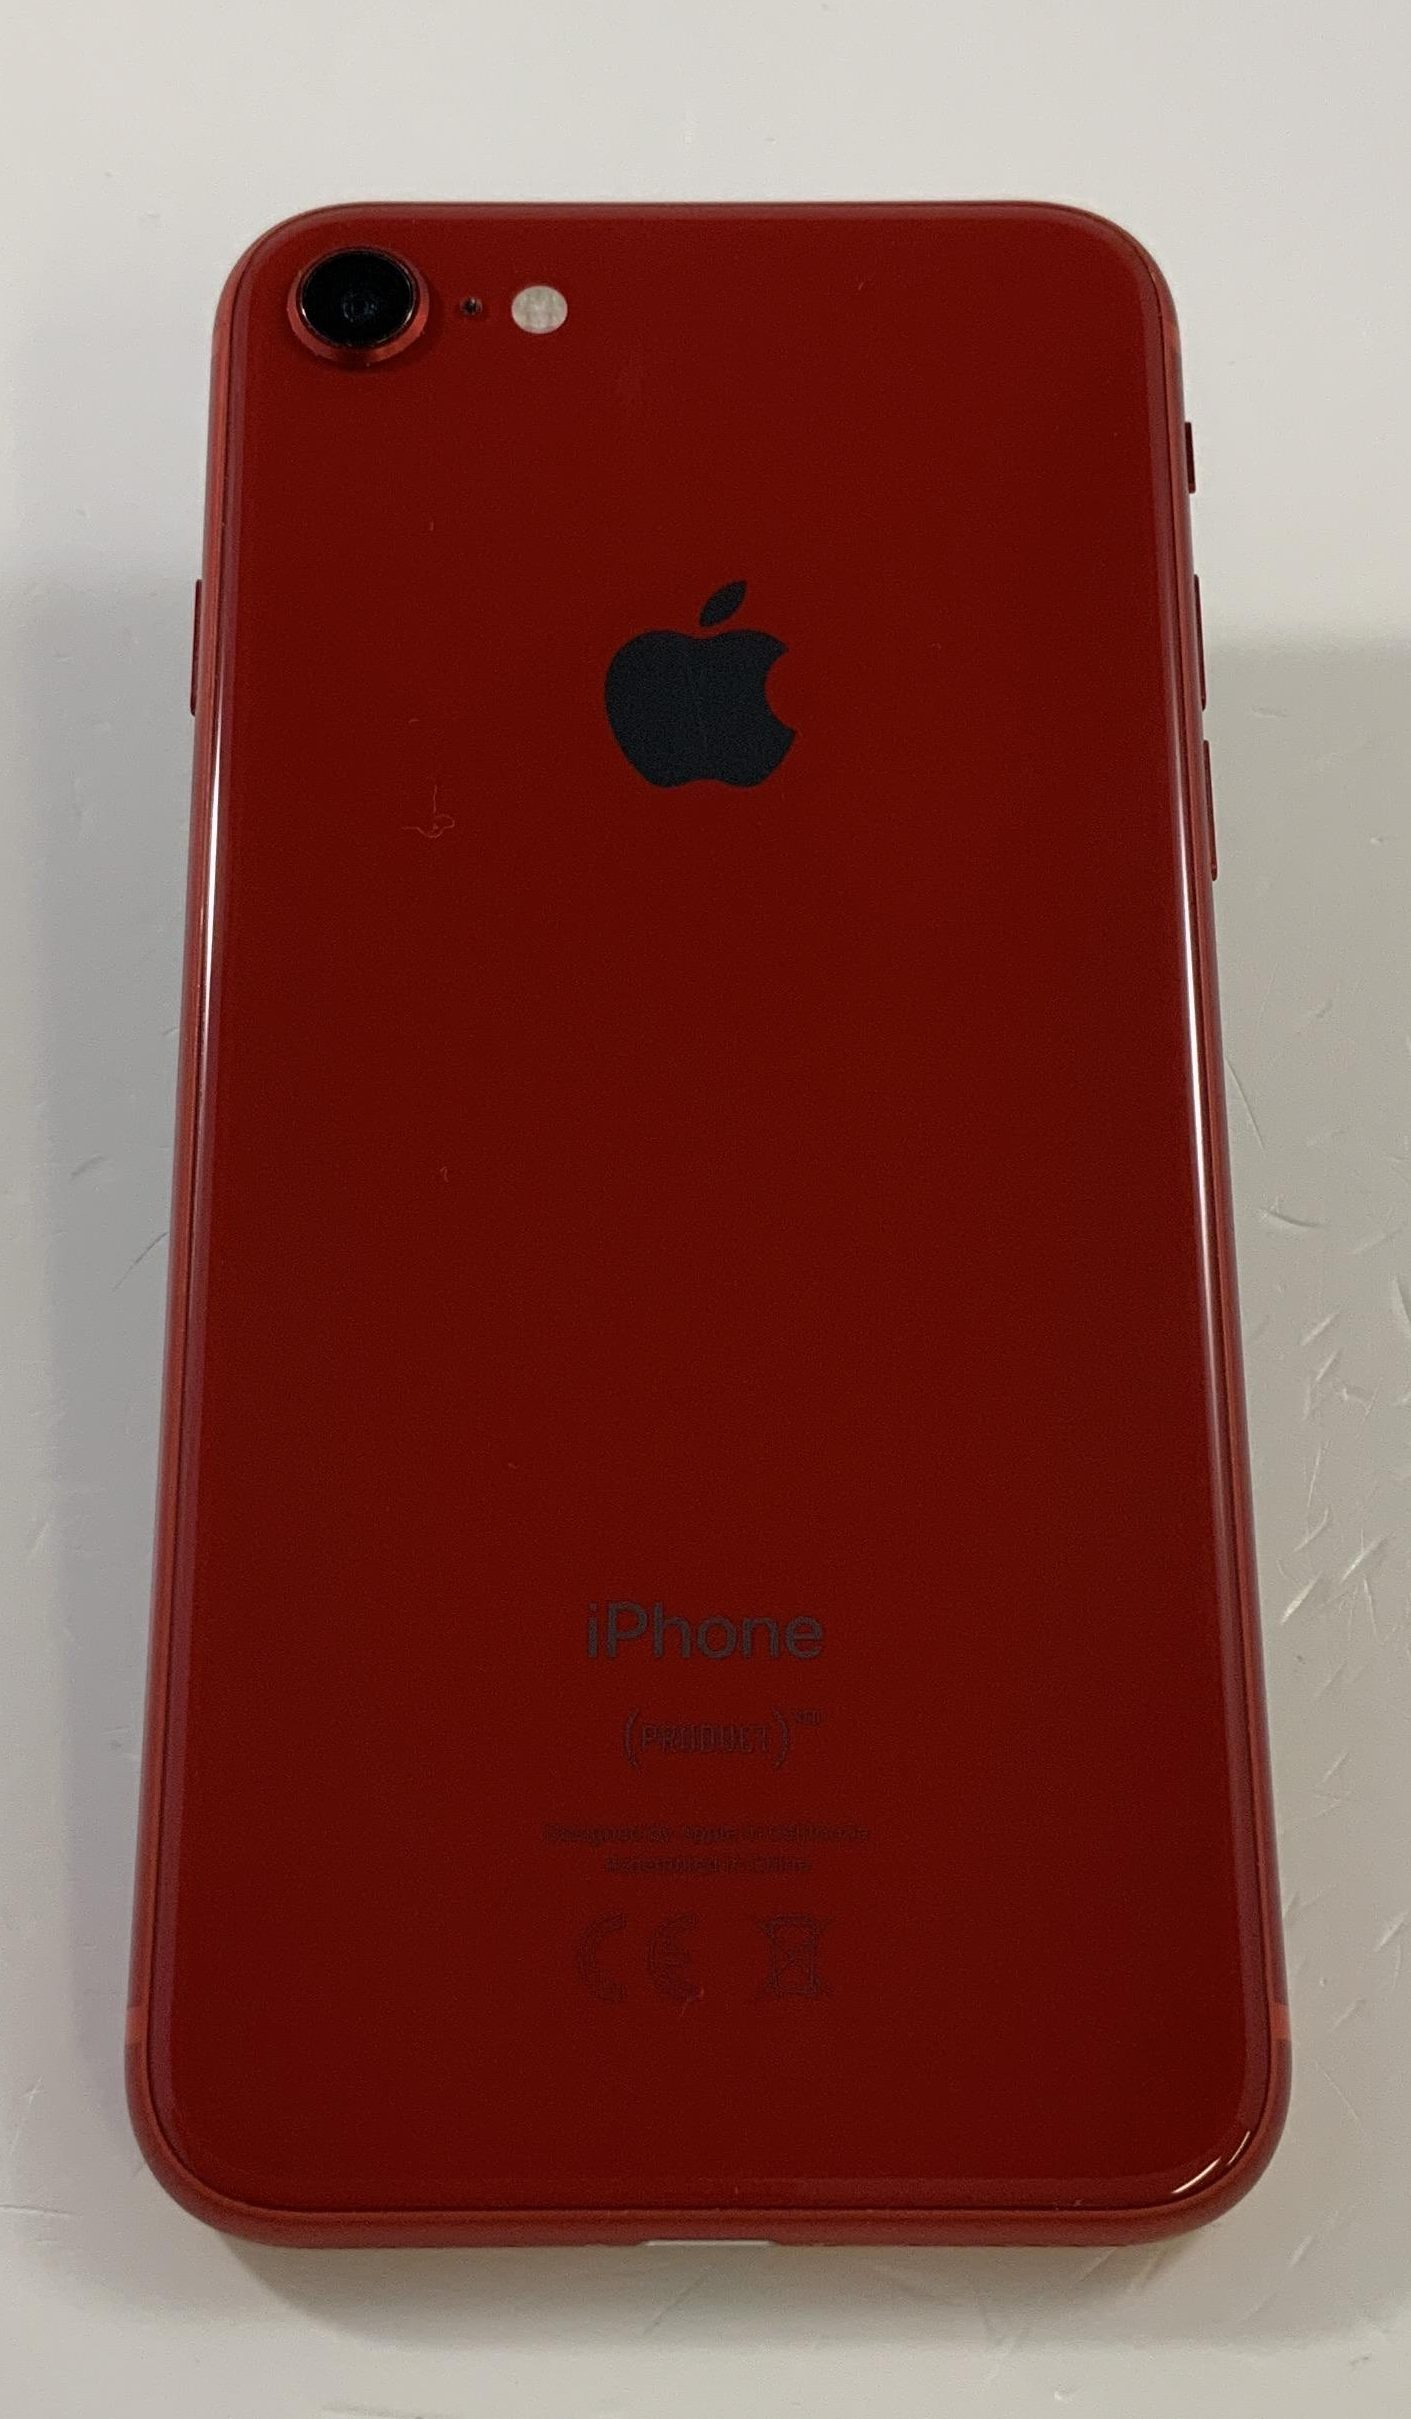 iPhone 8 64GB, 64GB, Red, immagine 2